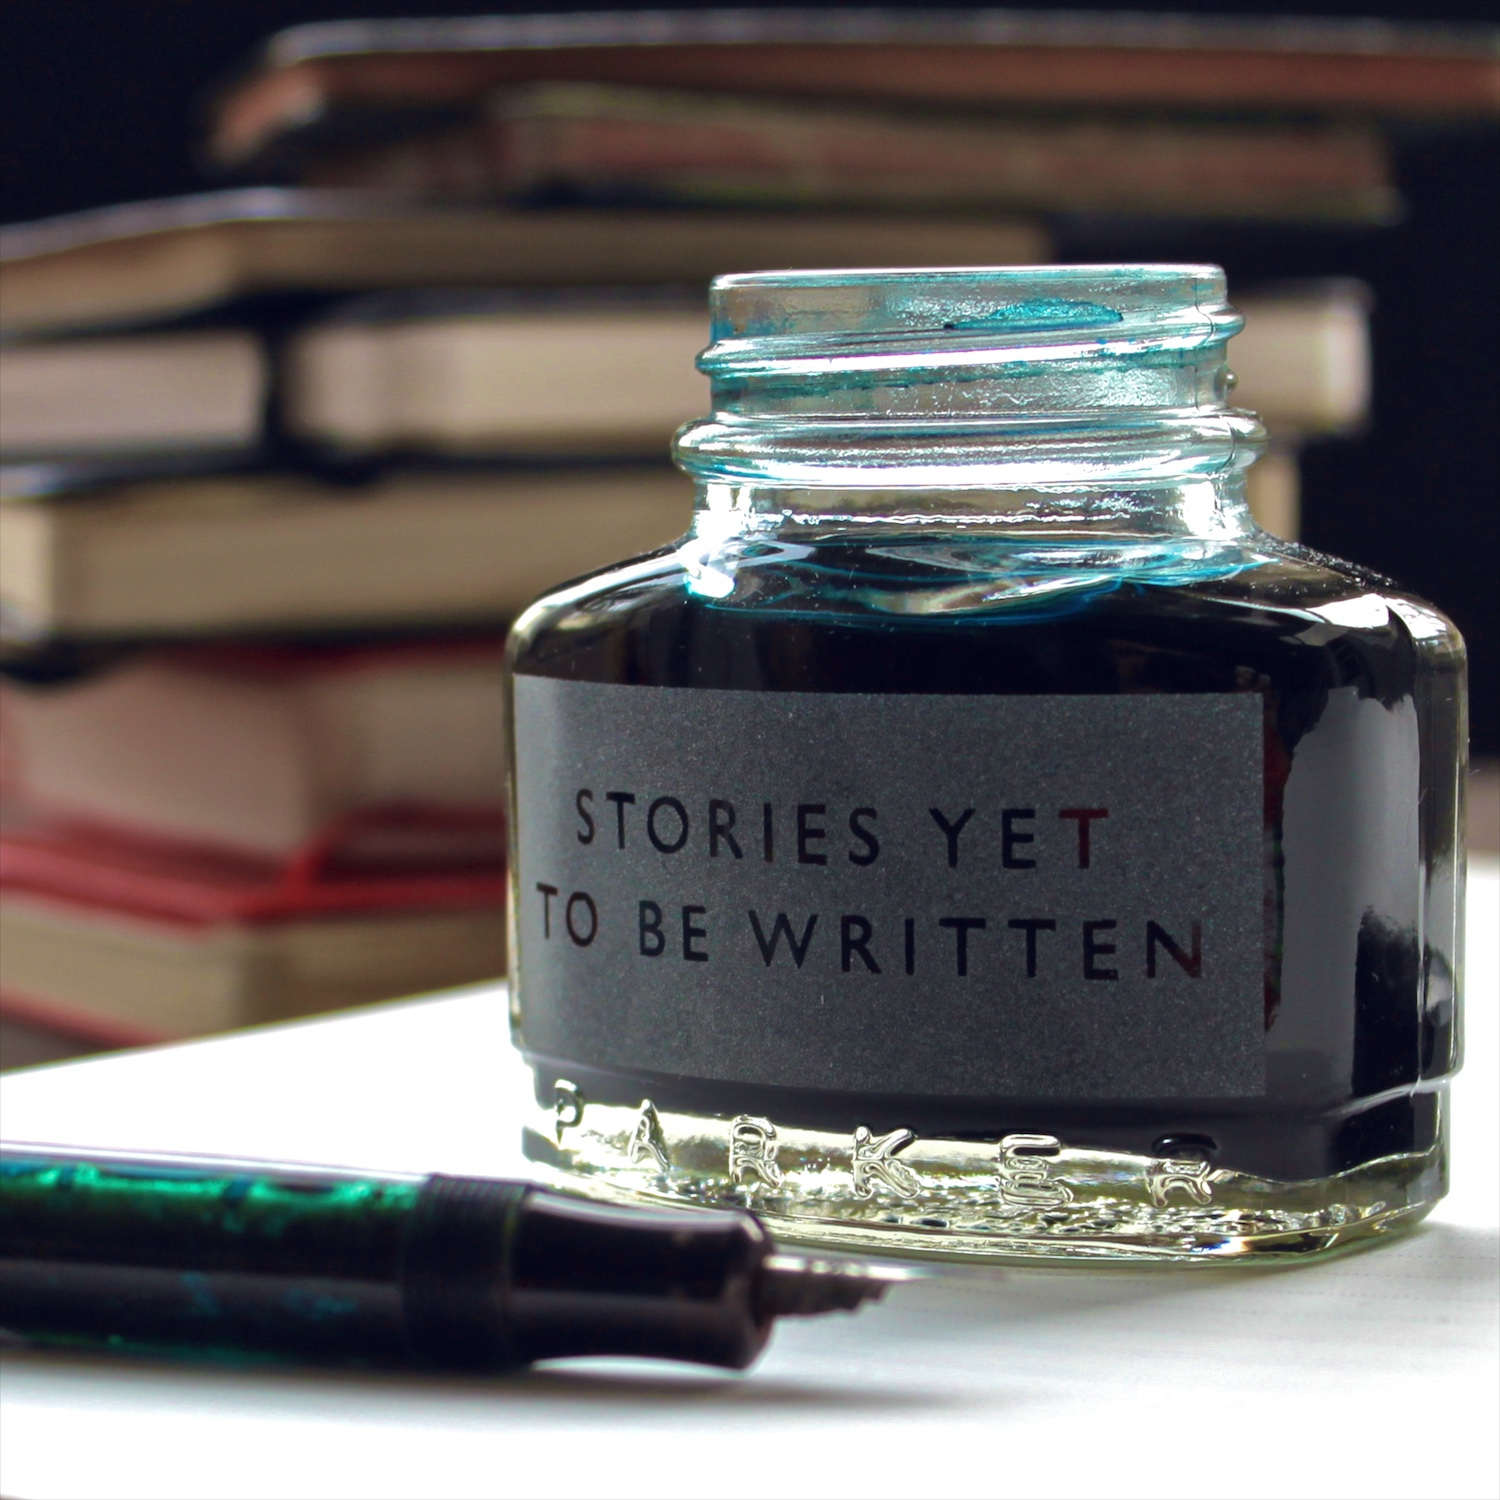 stories-yet-to-be-written-etched-ink-bottle-vinegar-and-brown-paper.jpg